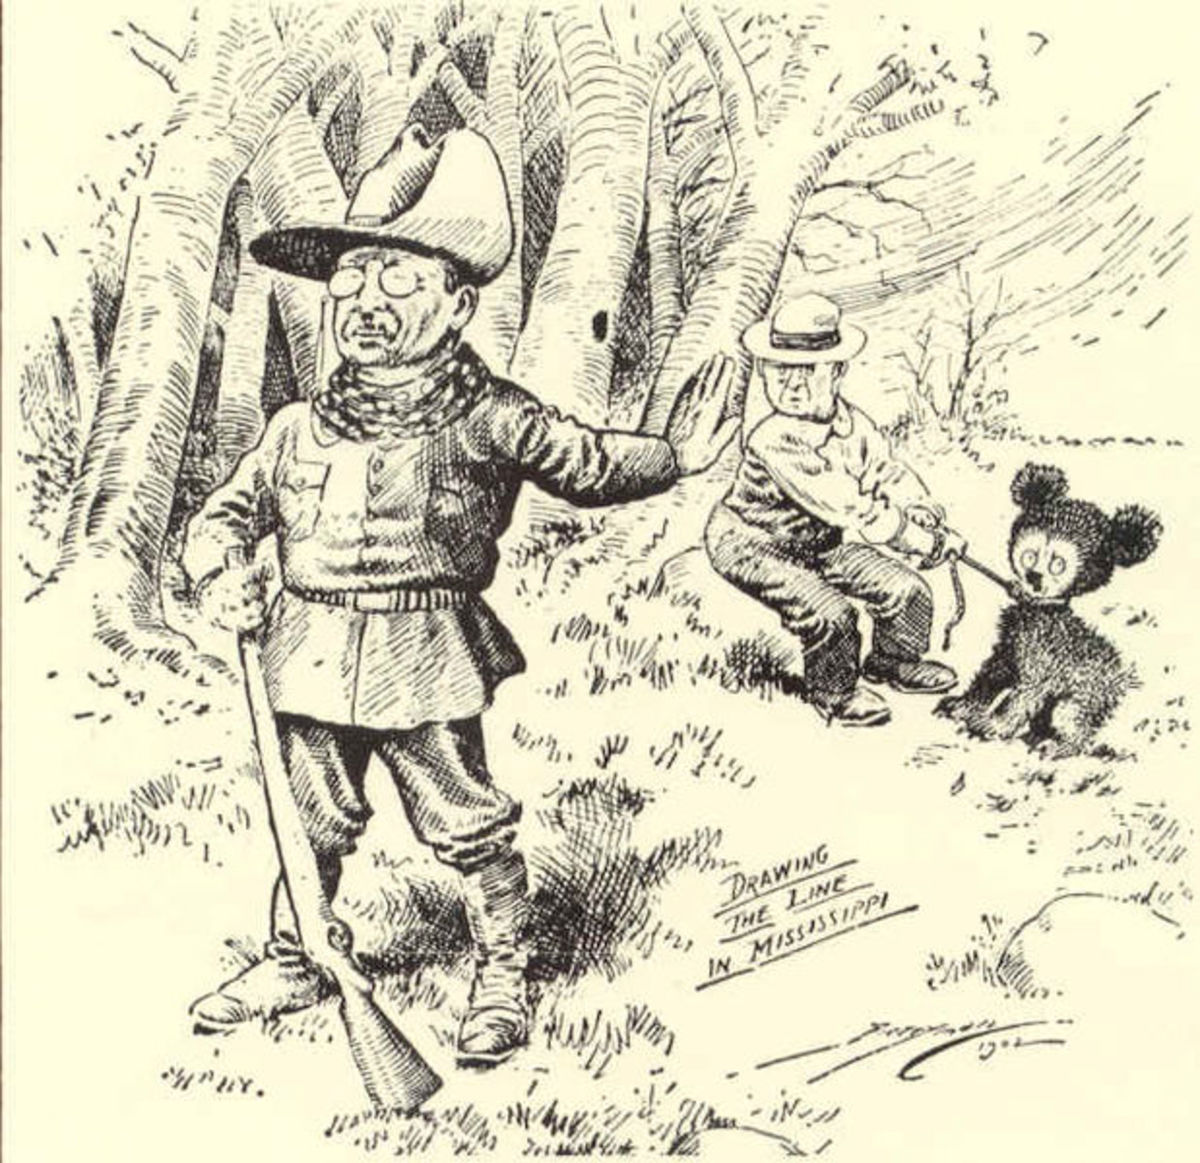 The original drawing by Clifford Berryman showed a much larger bear standing on its hind legs. It was revised to show the smaller bear pictured here. (This drawing is in the Public Domain and appeared in the Washington Post in November of 1902)